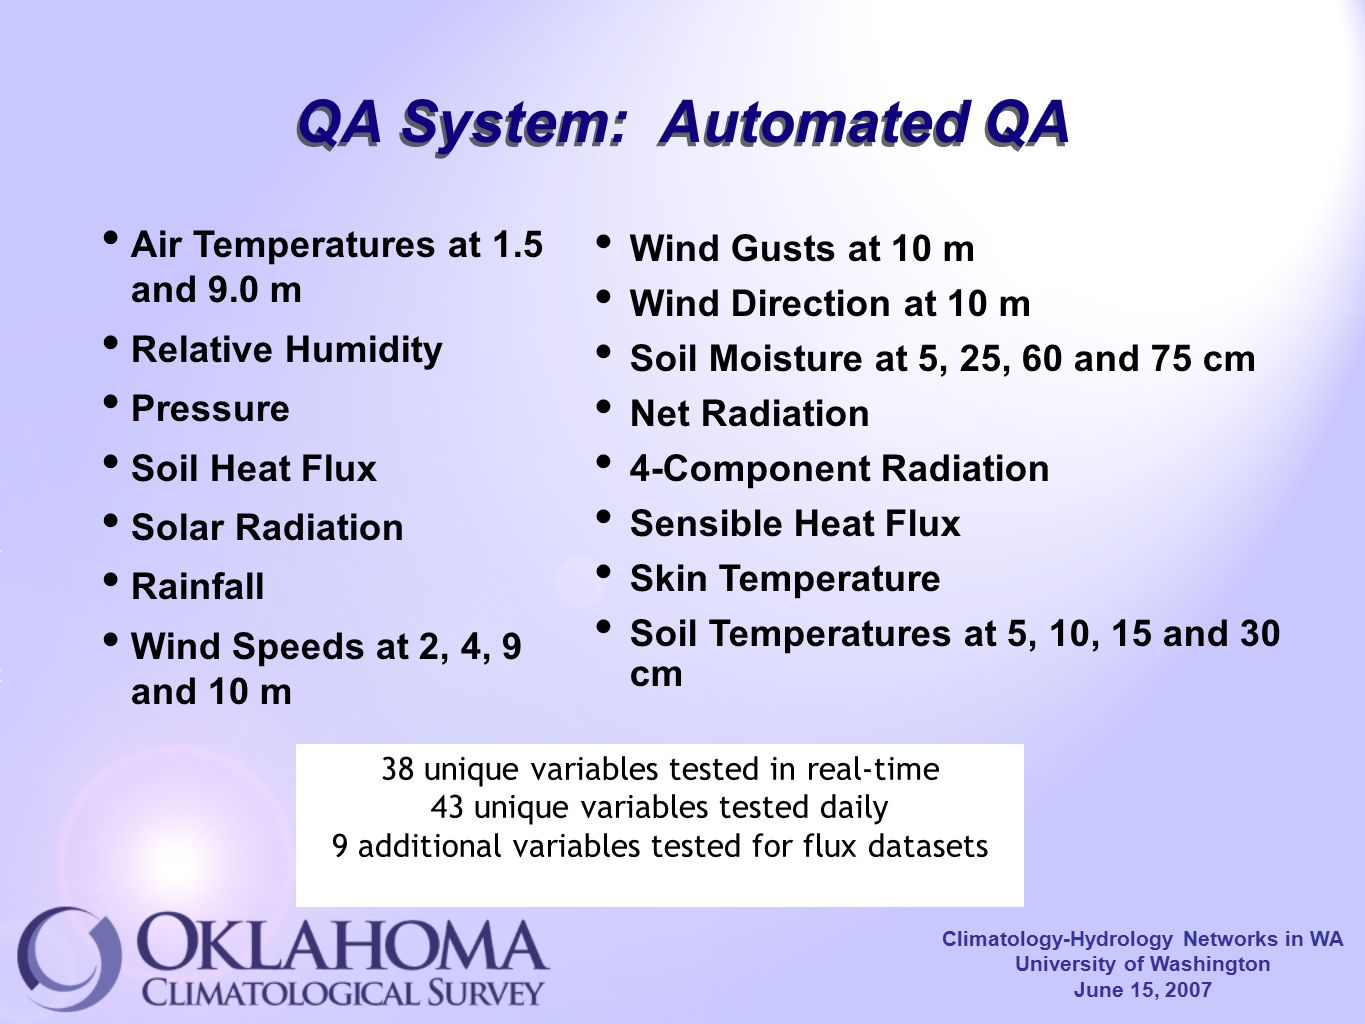 Climatology-Hydrology Networks in WA University of Washington June 15, 2007 QA System: Automated QA Air Temperatures at 1.5 and 9.0 m Relative Humidity Pressure Soil Heat Flux Solar Radiation Rainfall Wind Speeds at 2, 4, 9 and 10 m Wind Gusts at 10 m Wind Direction at 10 m Soil Moisture at 5, 25, 60 and 75 cm Net Radiation 4-Component Radiation Sensible Heat Flux Skin Temperature Soil Temperatures at 5, 10, 15 and 30 cm 38 unique variables tested in real-time 43 unique variables tested daily 9 additional variables tested for flux datasets